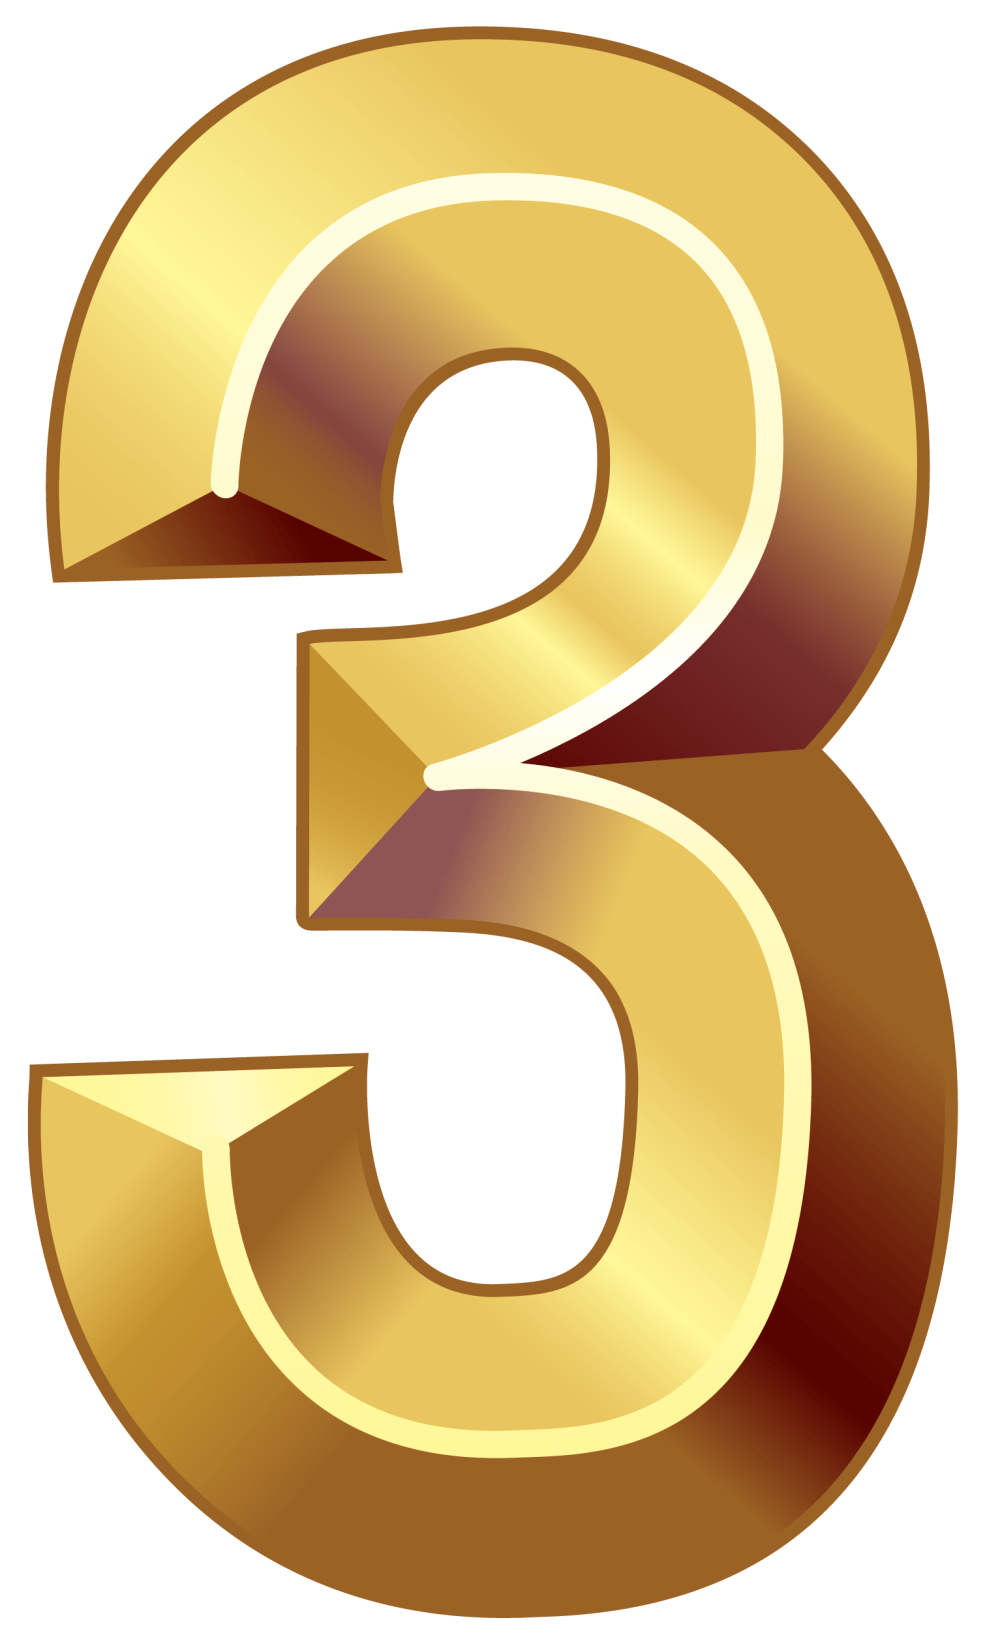 medium resolution of 1533x2530 gold number three png clipart image numbers64 gold